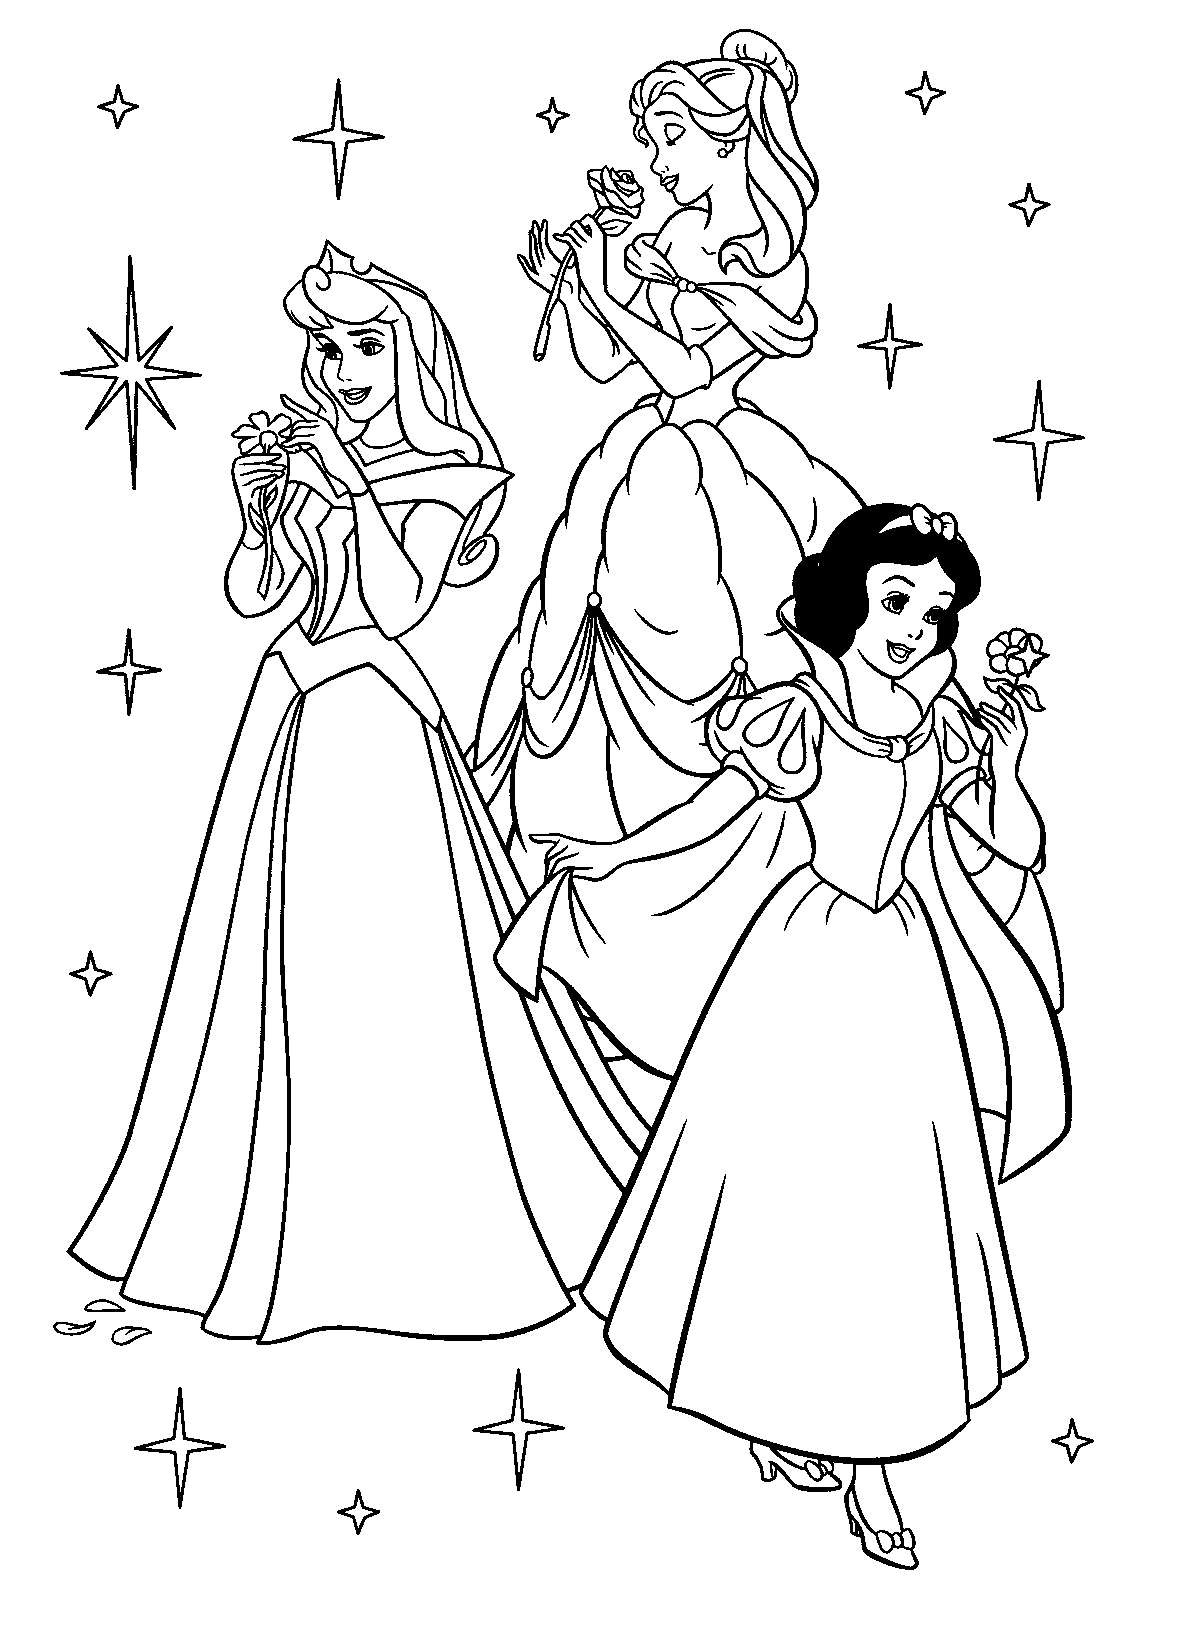 Princess coloring in page - Disney Princess Coloring Pages